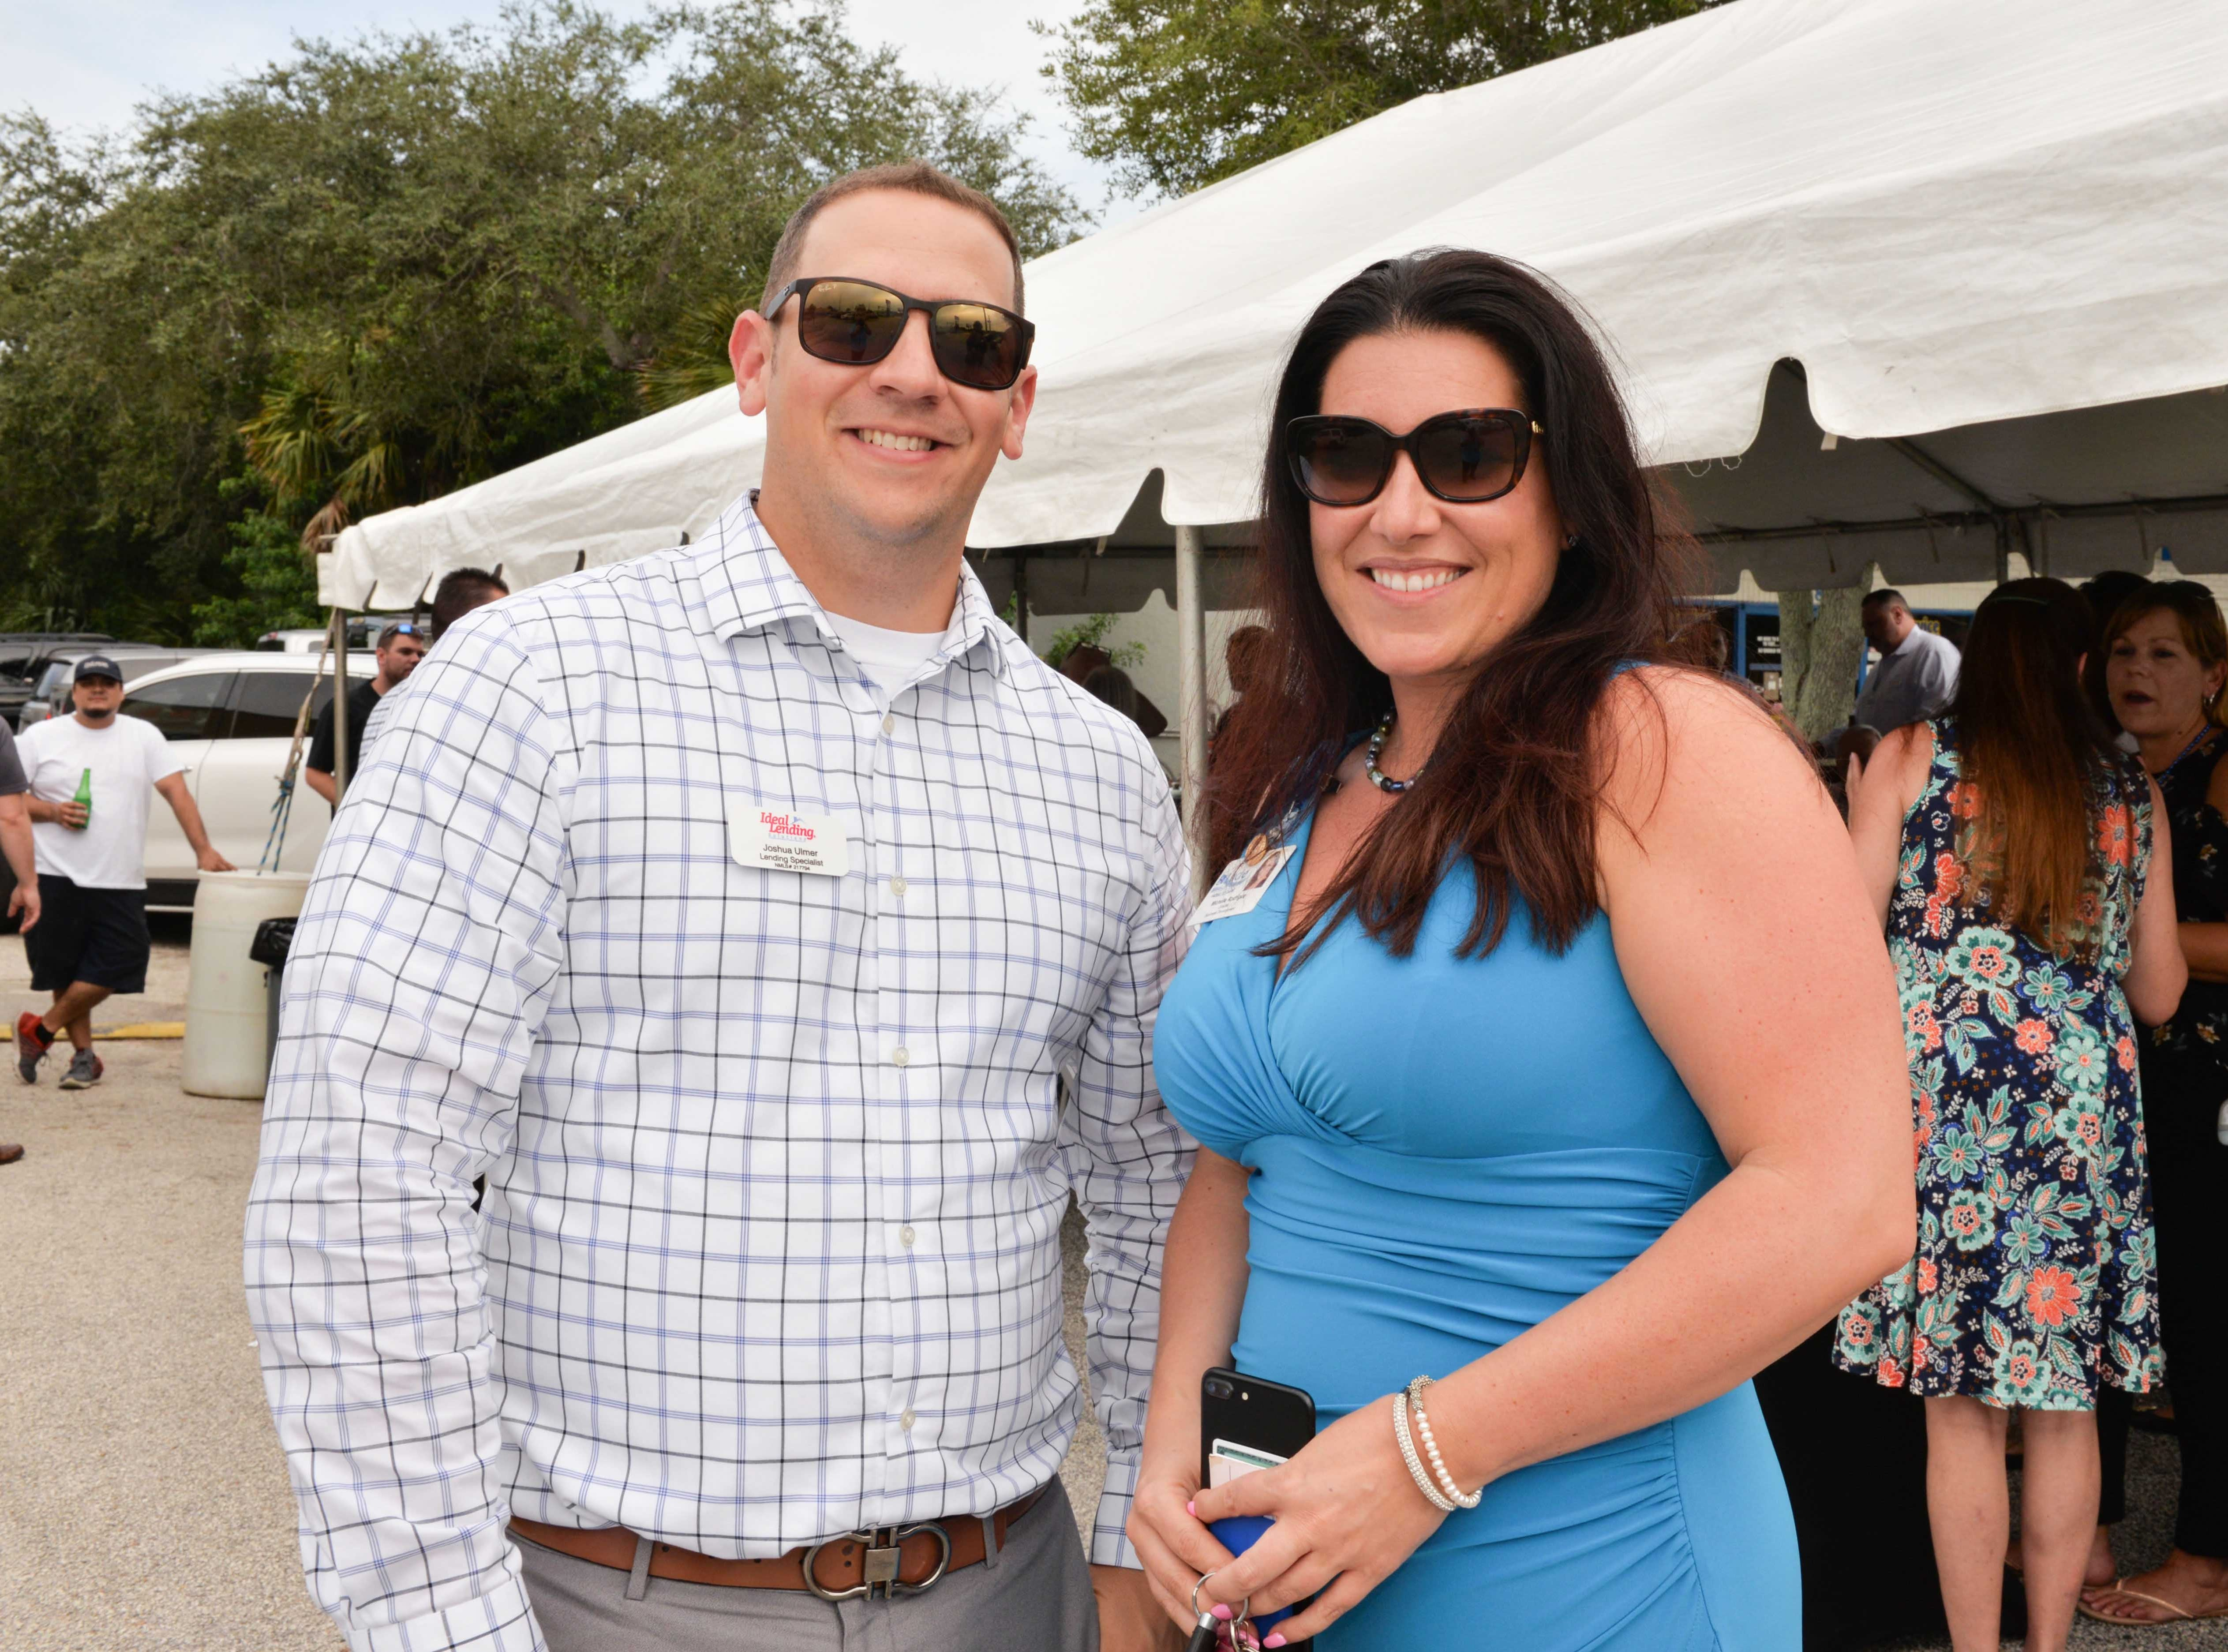 Joshua Ulmer, of Ideal Lending, and Michelle Rodriguez, of St. Lucie Medical Center, at the Treasure Coast Builders Association's Fun After Five networking event.